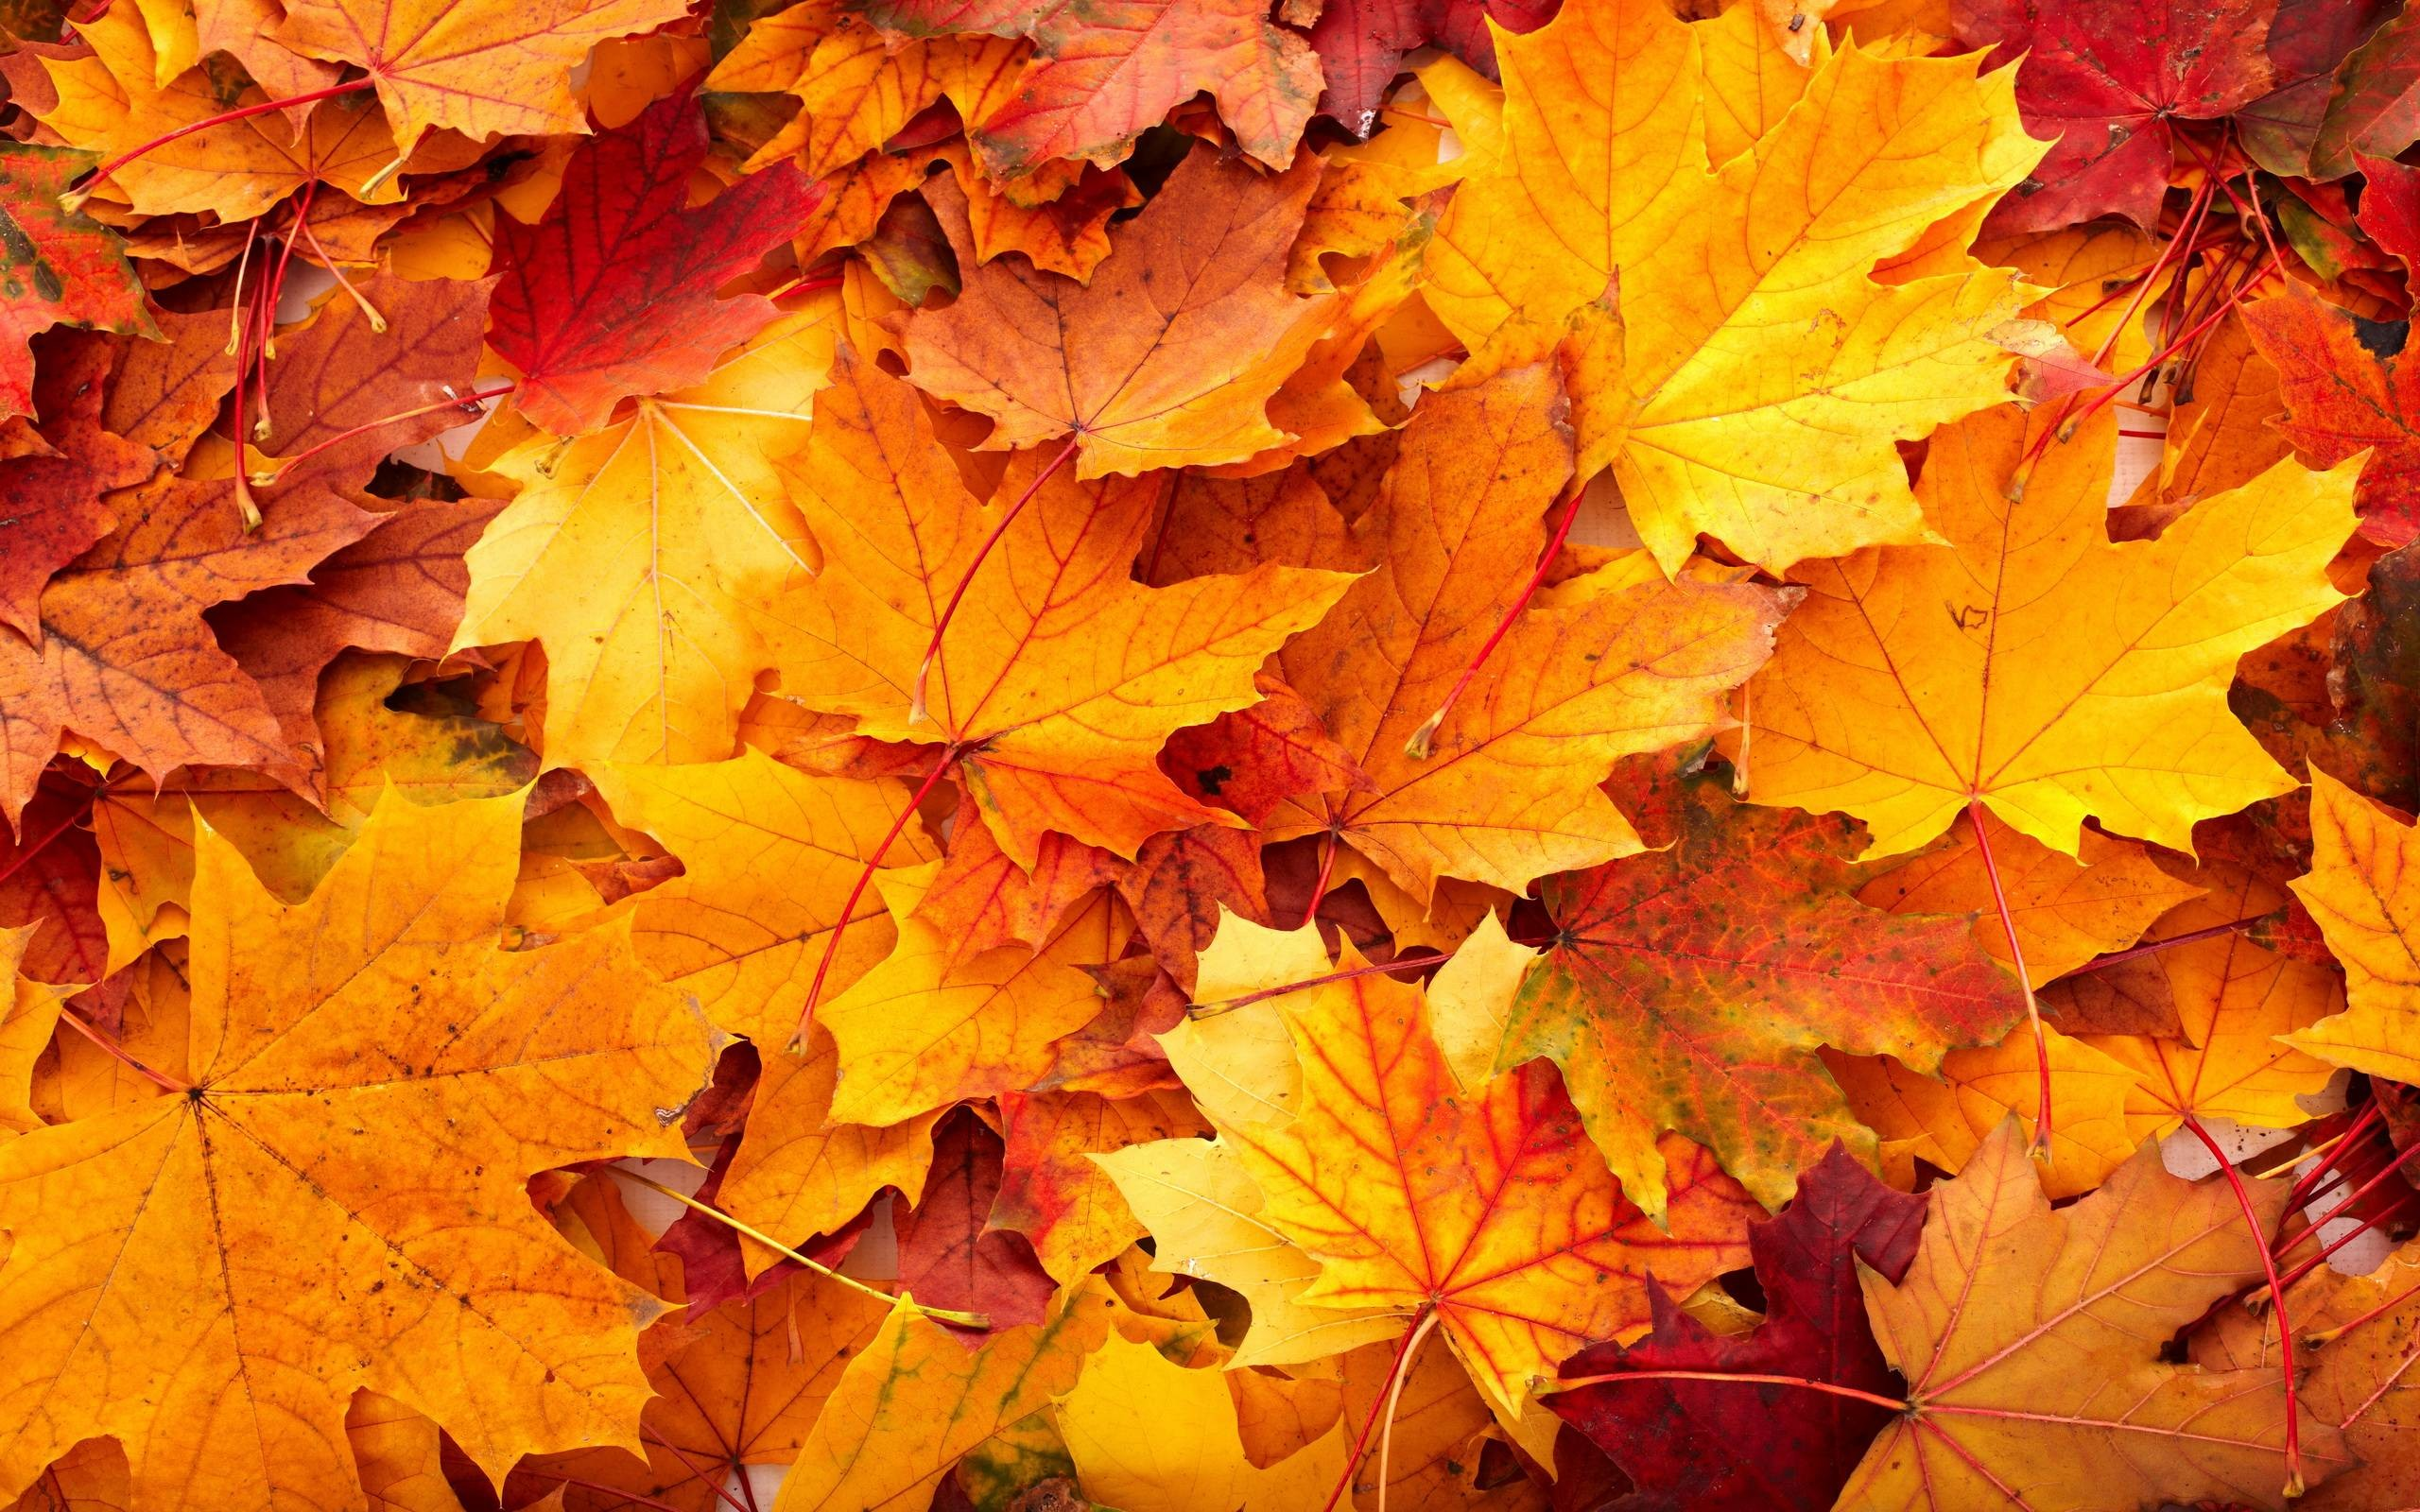 2560x1600 Fall Leaves Nature High Resolution Wallpaper Desktop Backgrounds Free